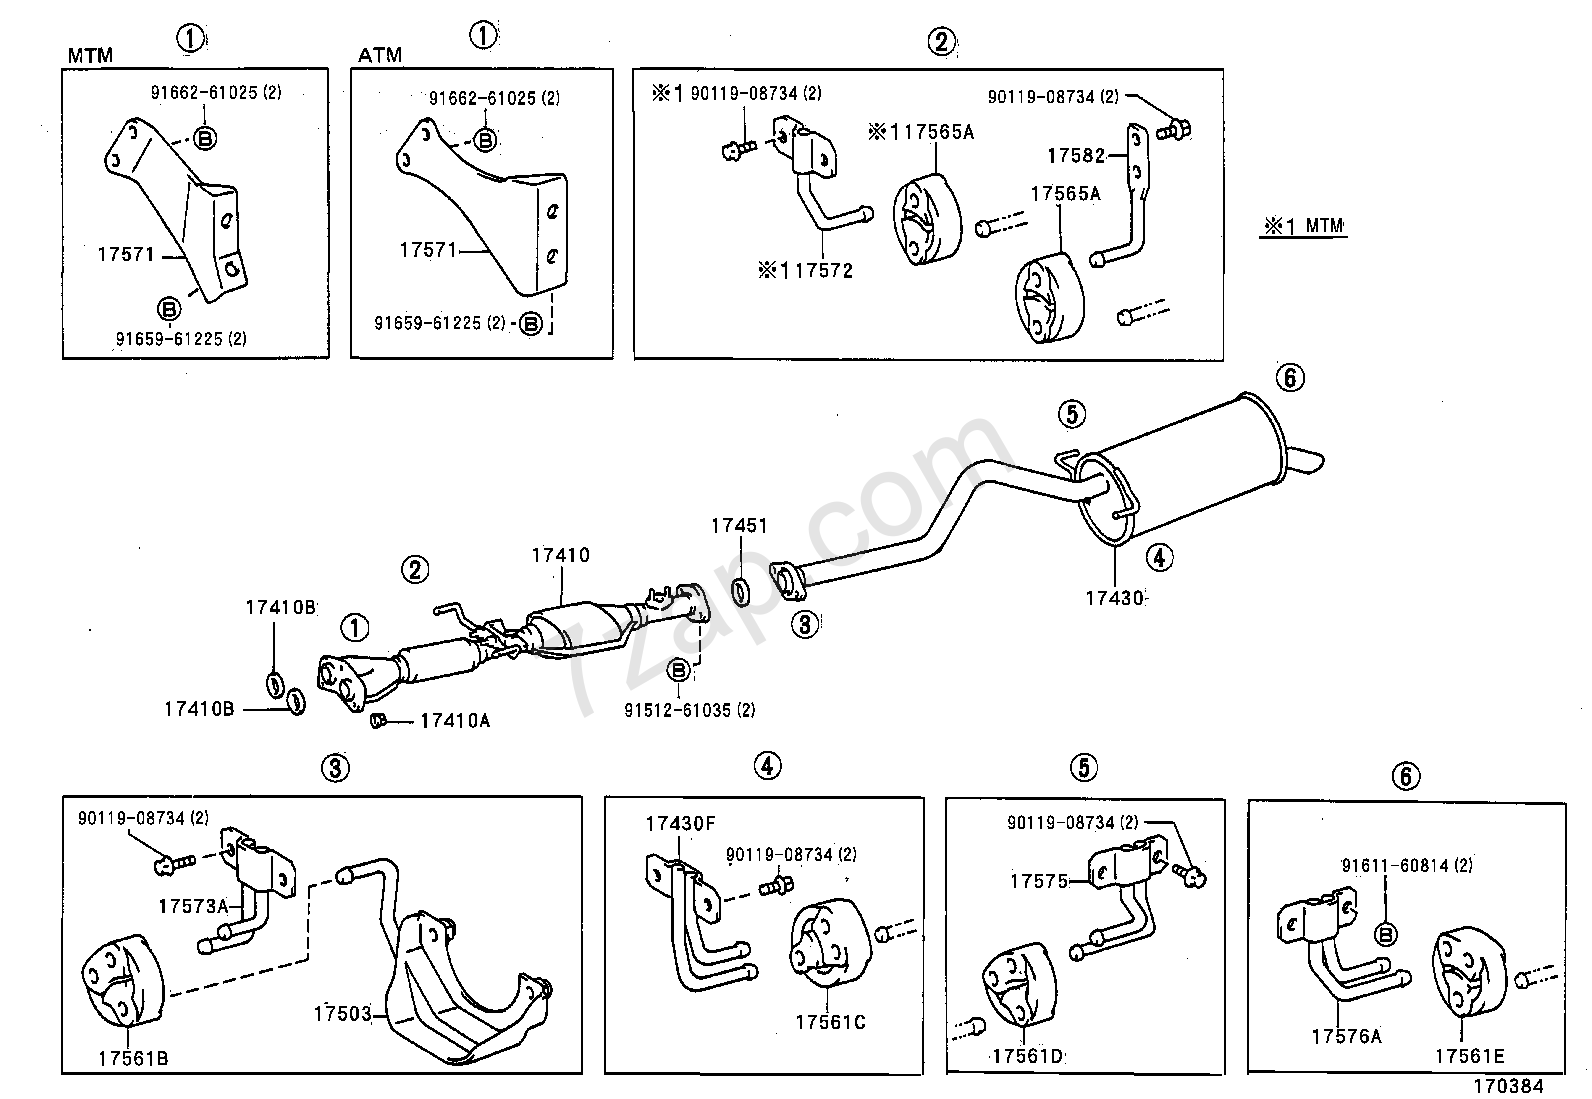 Toyota Previa Exhaust System Diagram Electrical Wiring Diagrams Plug Spark Plugs Pipe